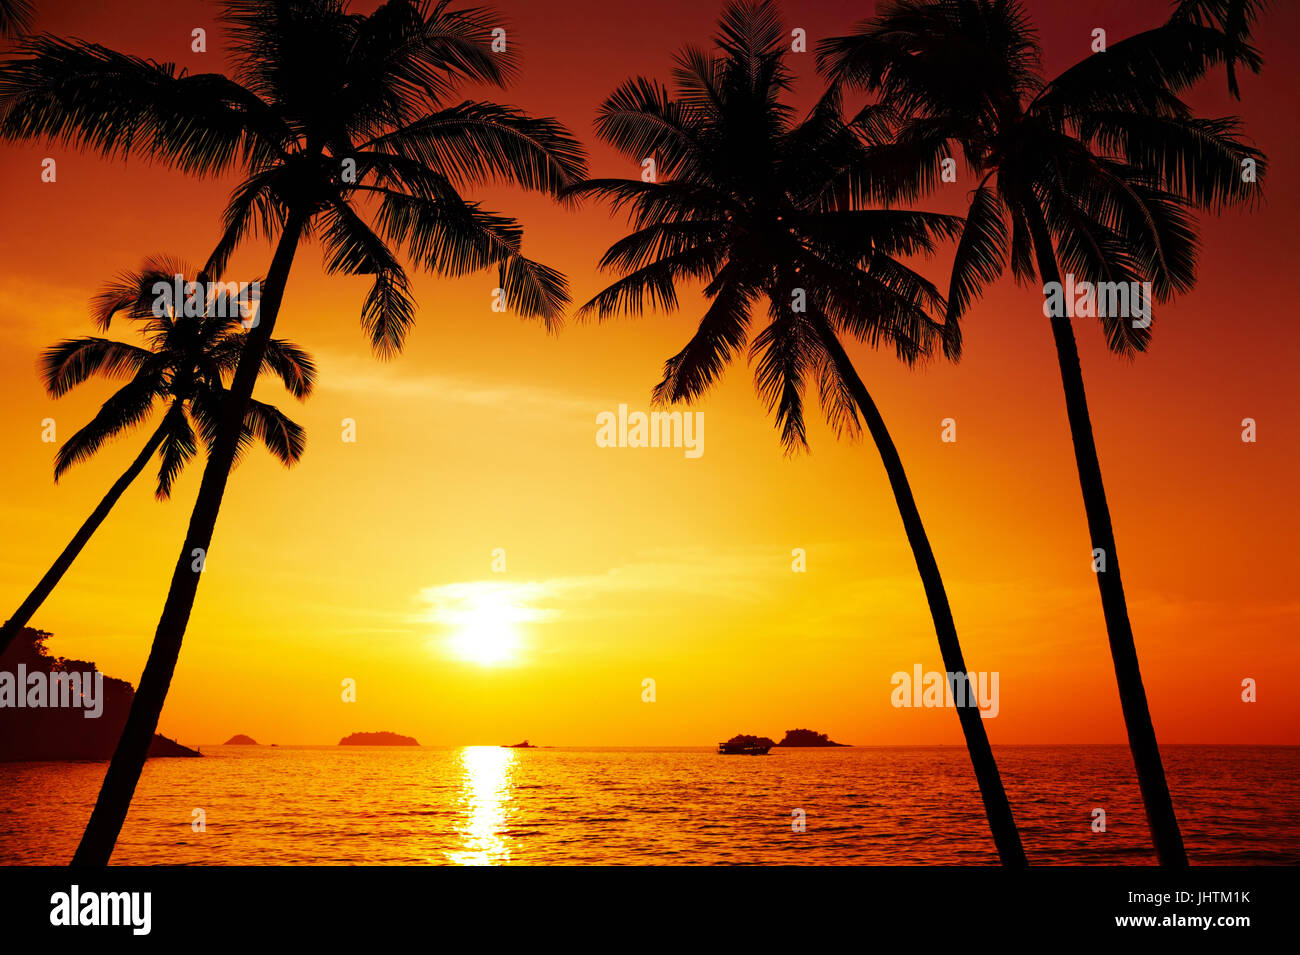 Palm trees silhouette at sunset, Chang island, Thailand - Stock Image